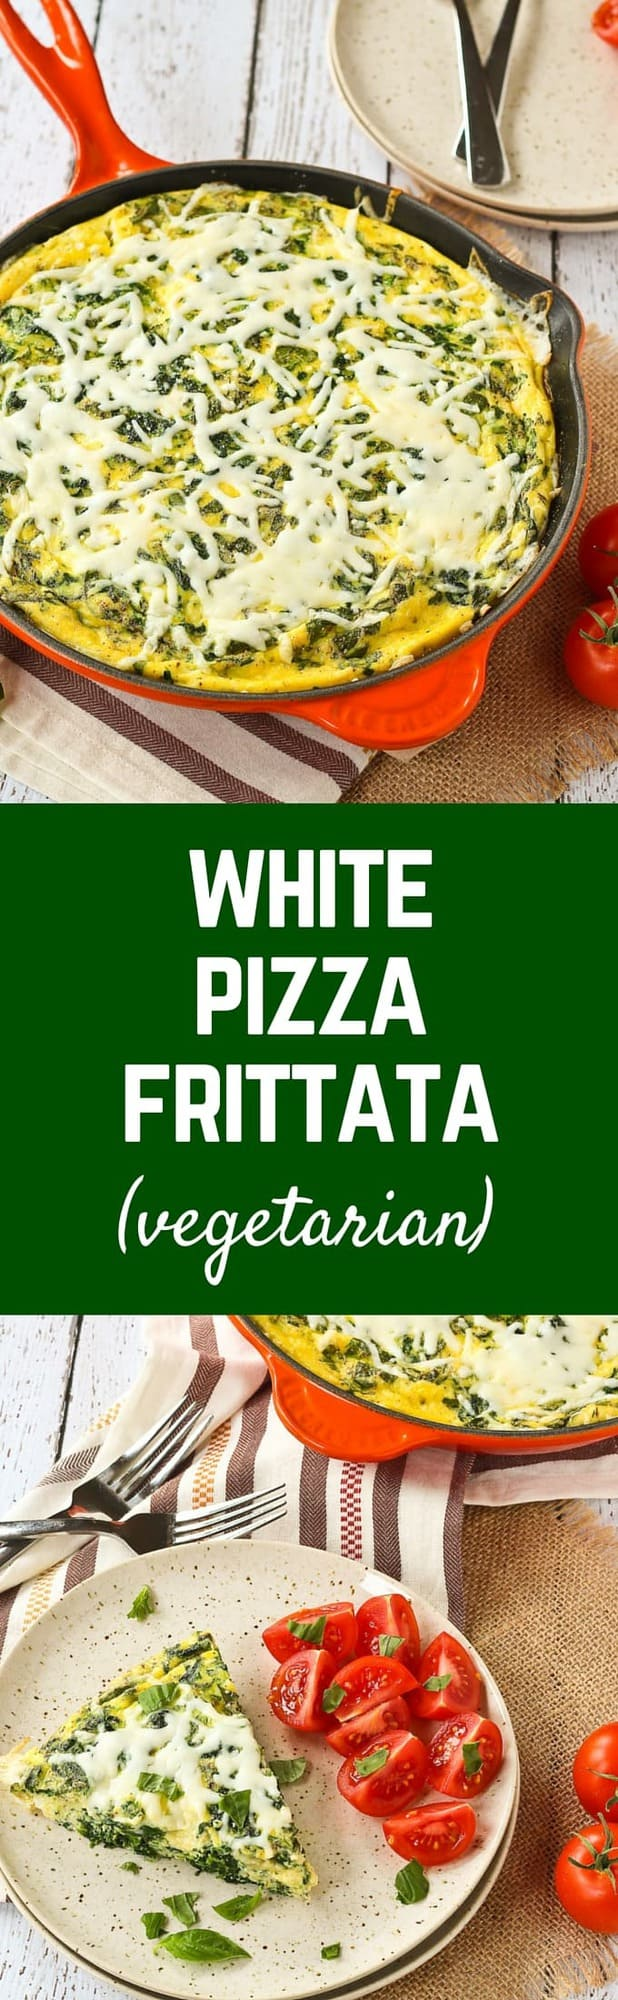 Pizza at brunch - what could be better? This white pizza frittata has all the flavors of pizza that you love in an irresistible and filling baked egg frittata. Brunch perfection! Get the recipe on RachelCooks.com!